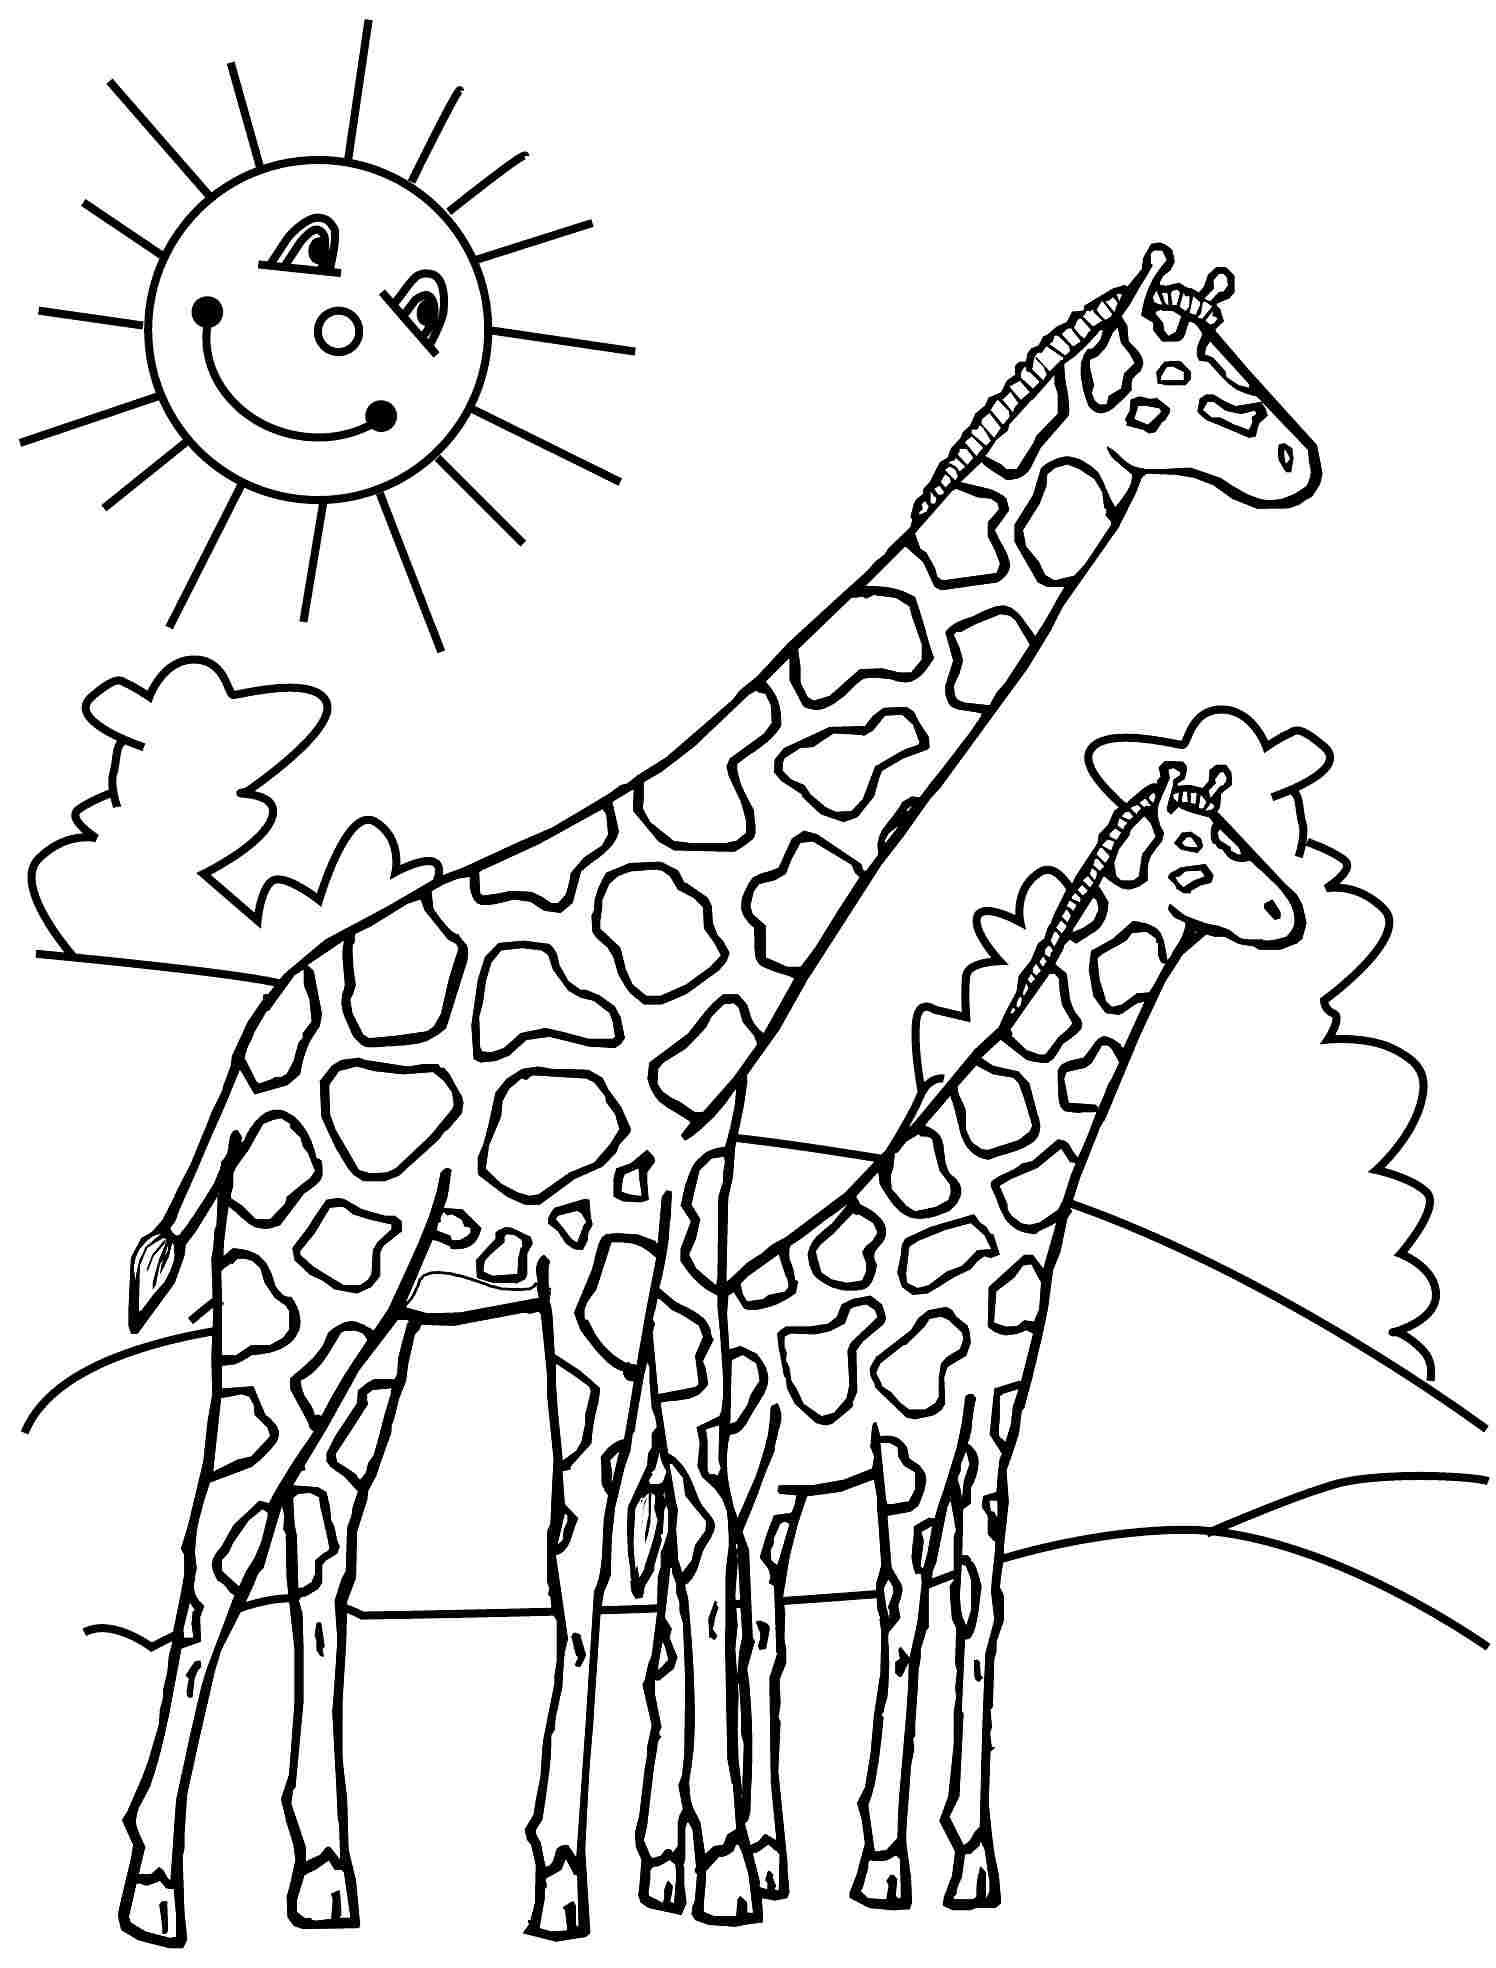 colouring pages of giraffe print download giraffe coloring pages for kids to have fun colouring giraffe pages of